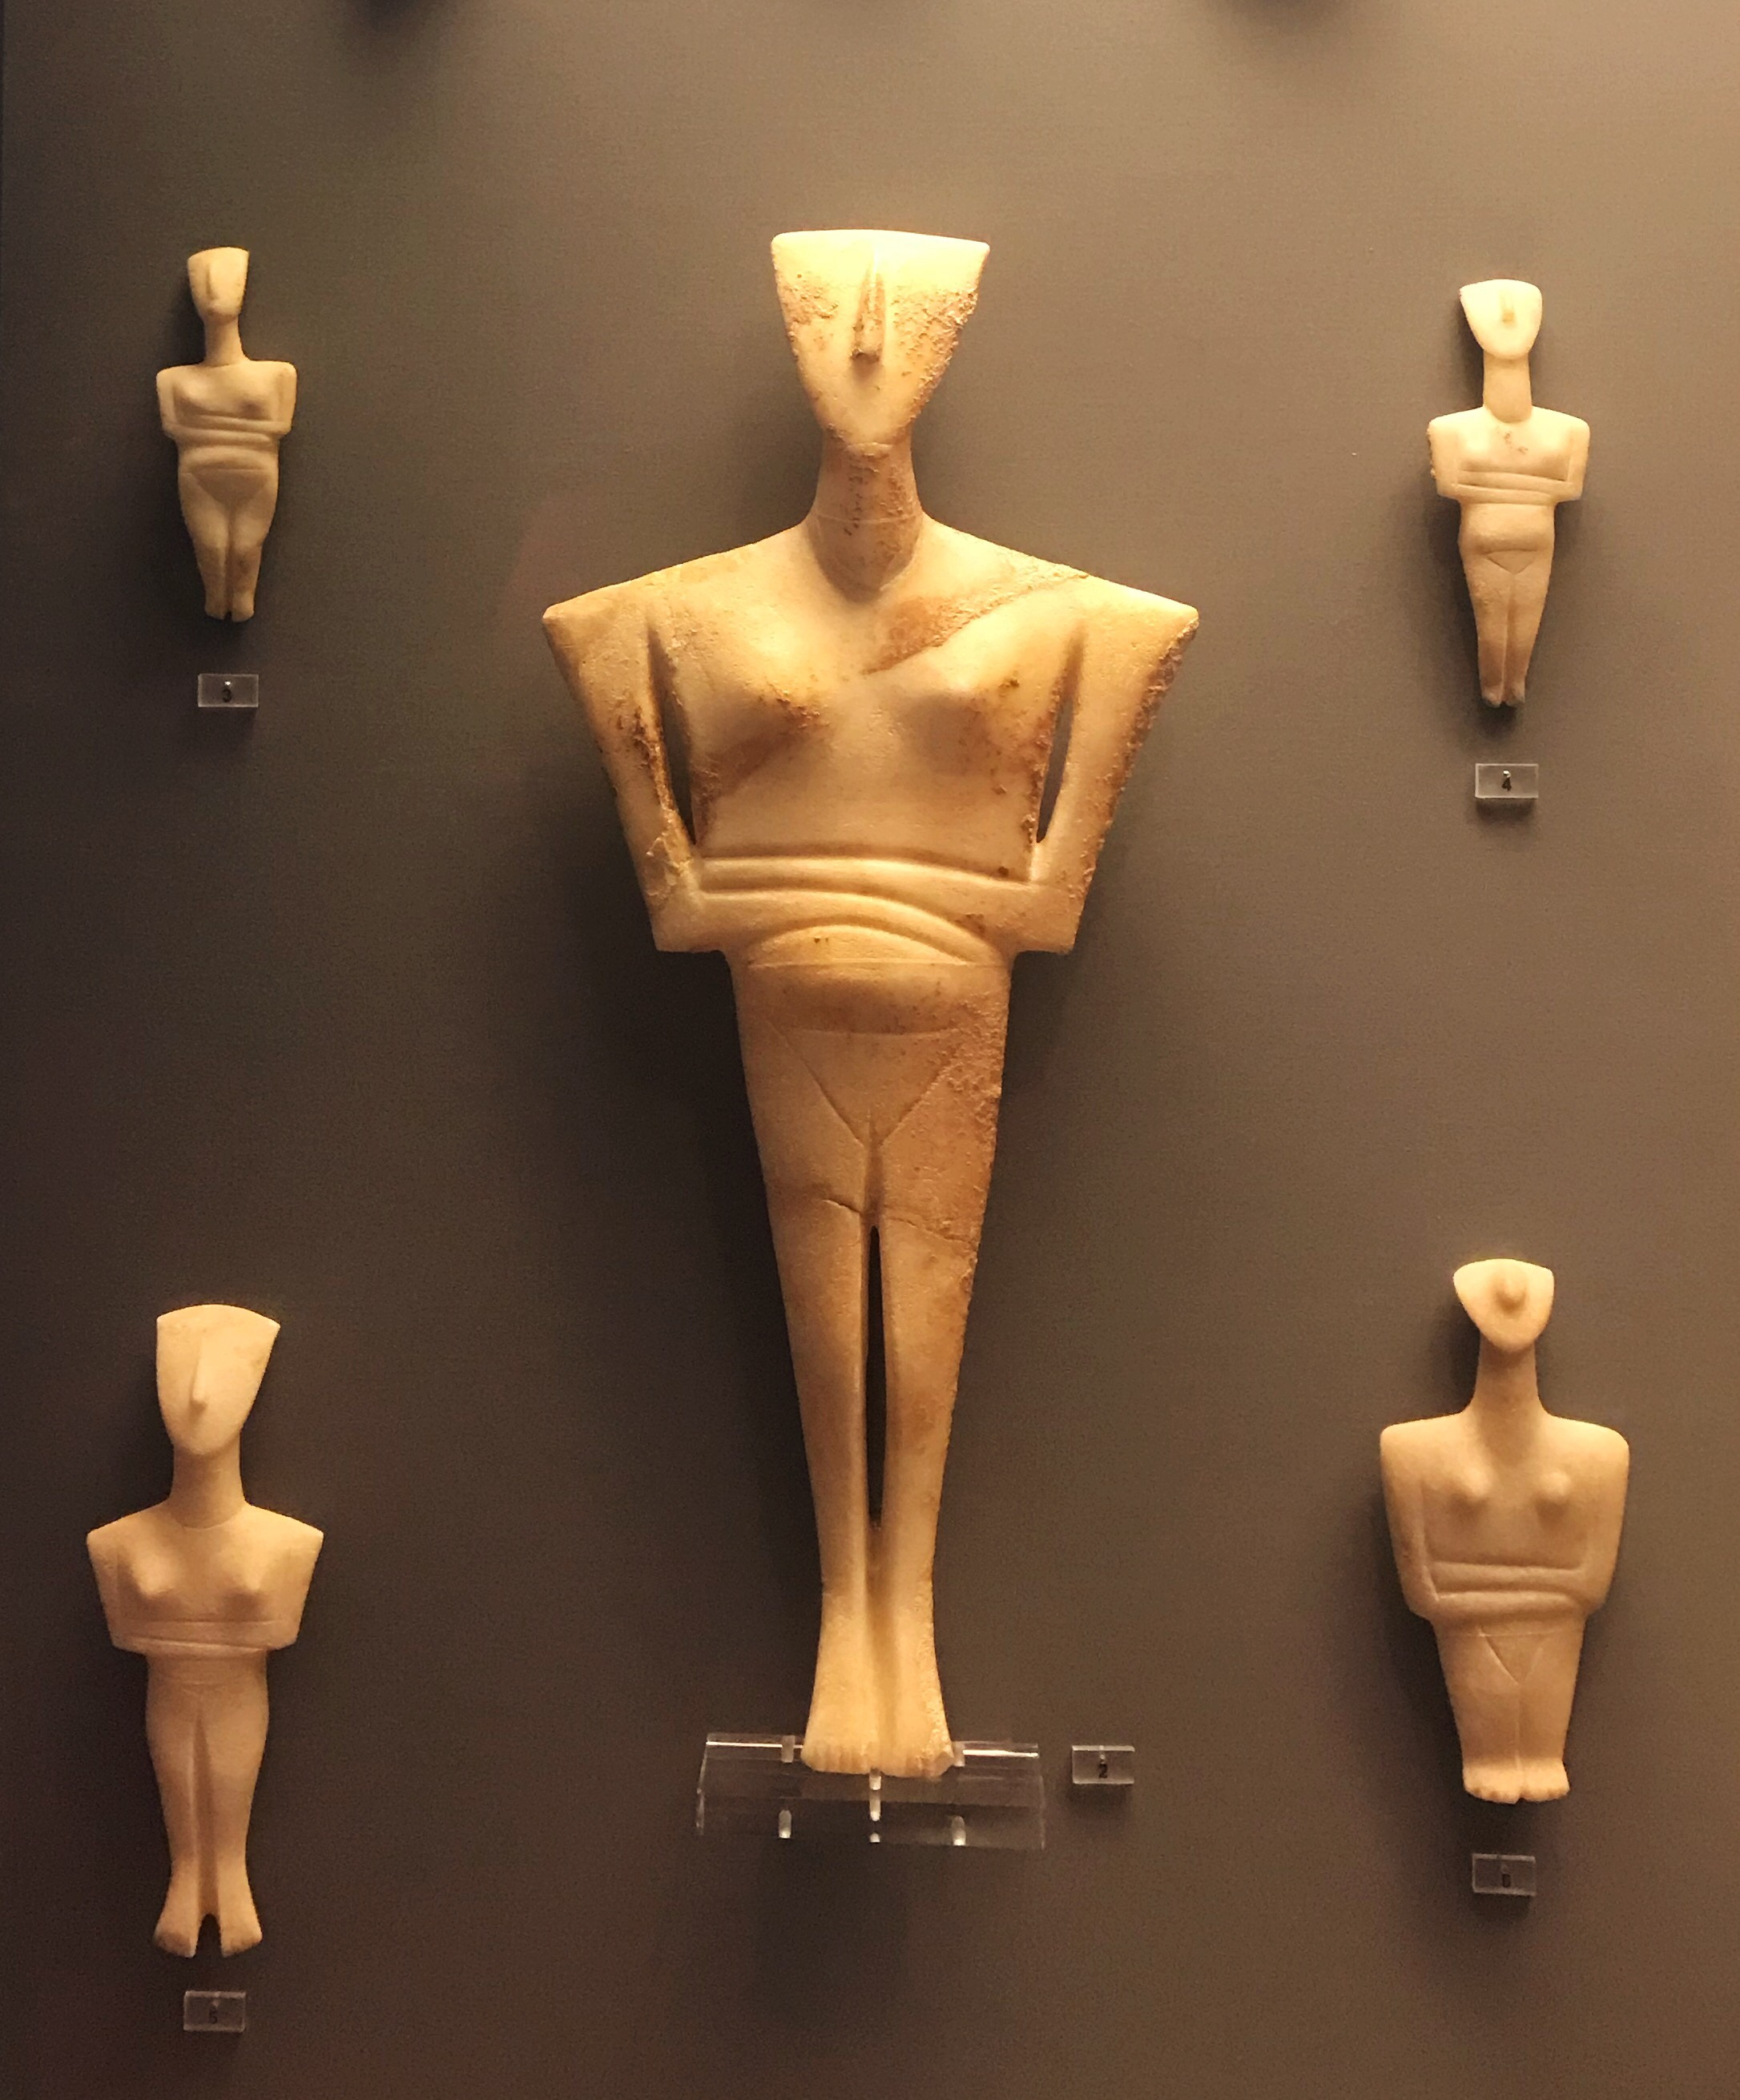 Ancient Cycladic figurines from Greek islands in the National Archeological Museum